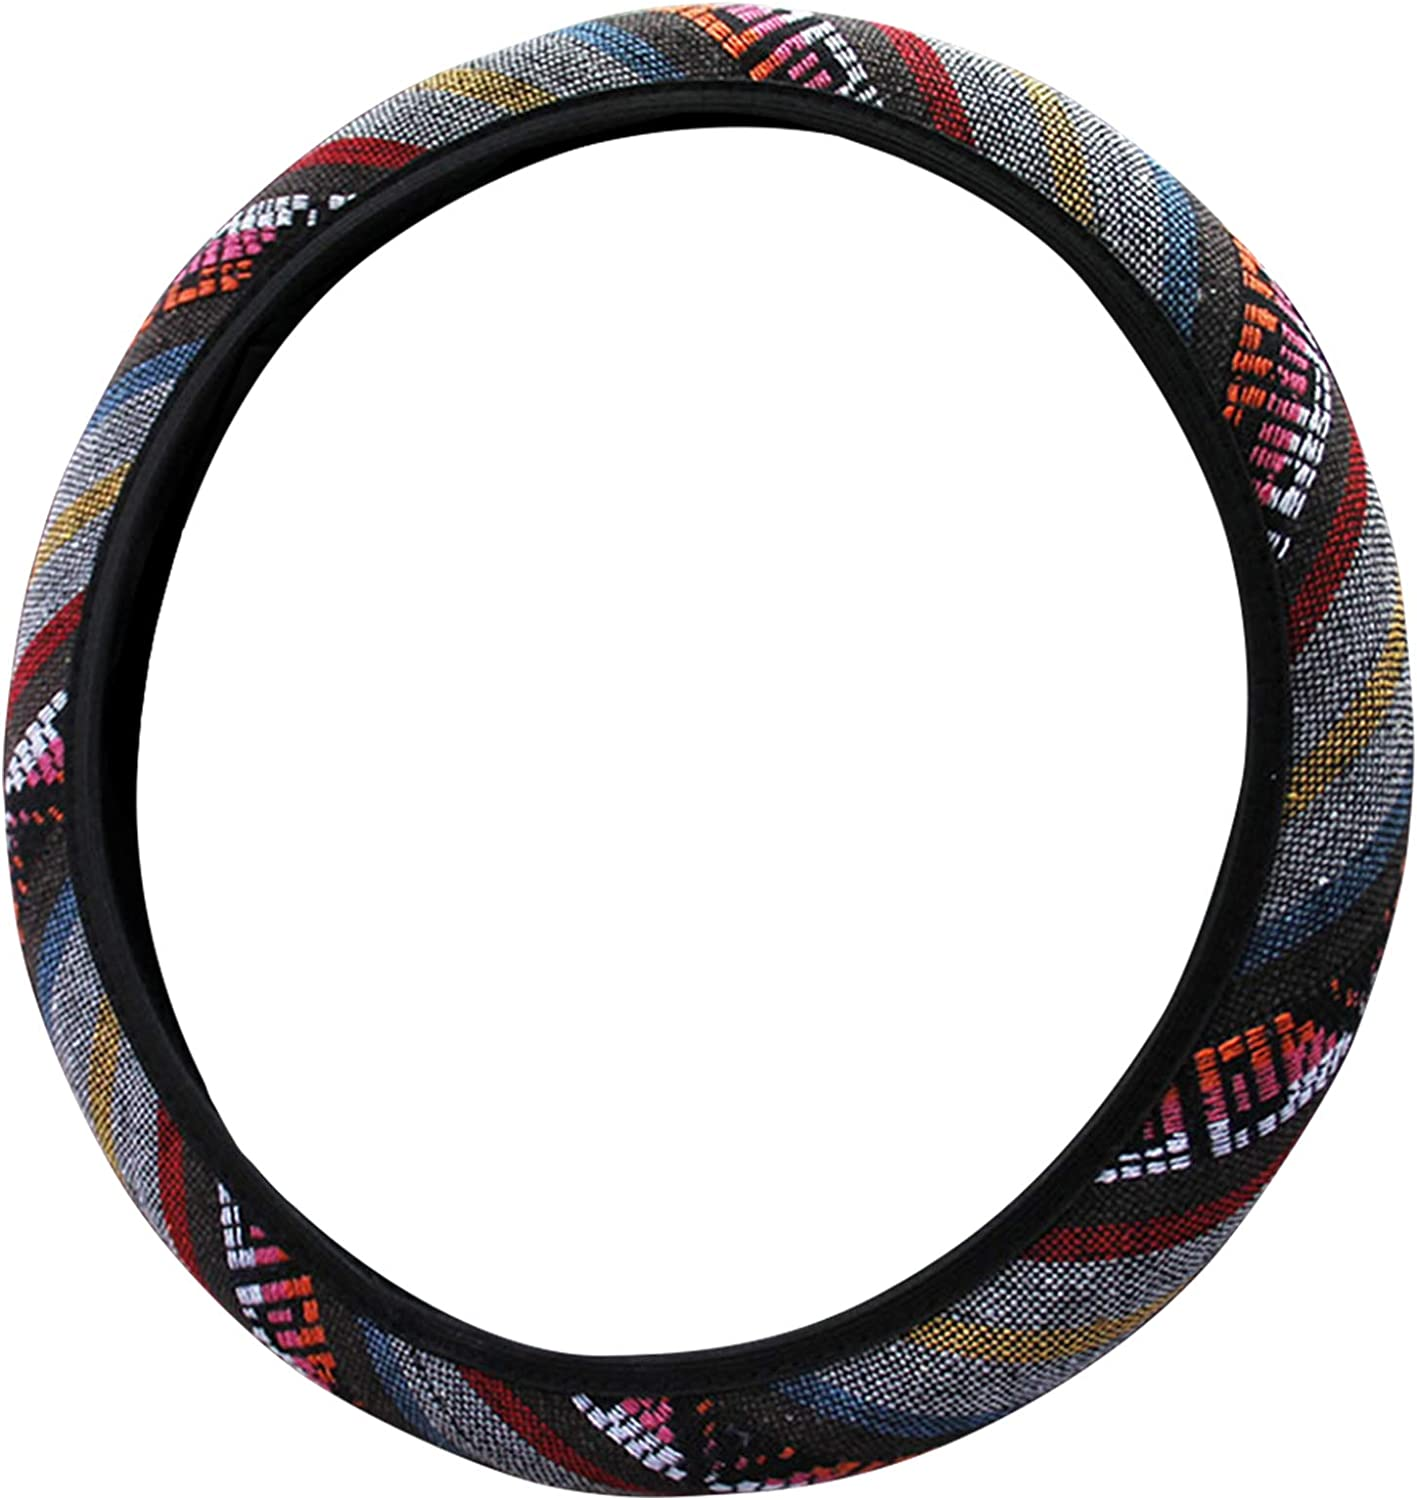 POHOVE 15 inch Car Steering Wheel Cover New Baja Blanket Car Steering Wheel Cover Universal Fit Most Cars,Odorless Coarse Flax Cloth Ethnic Style